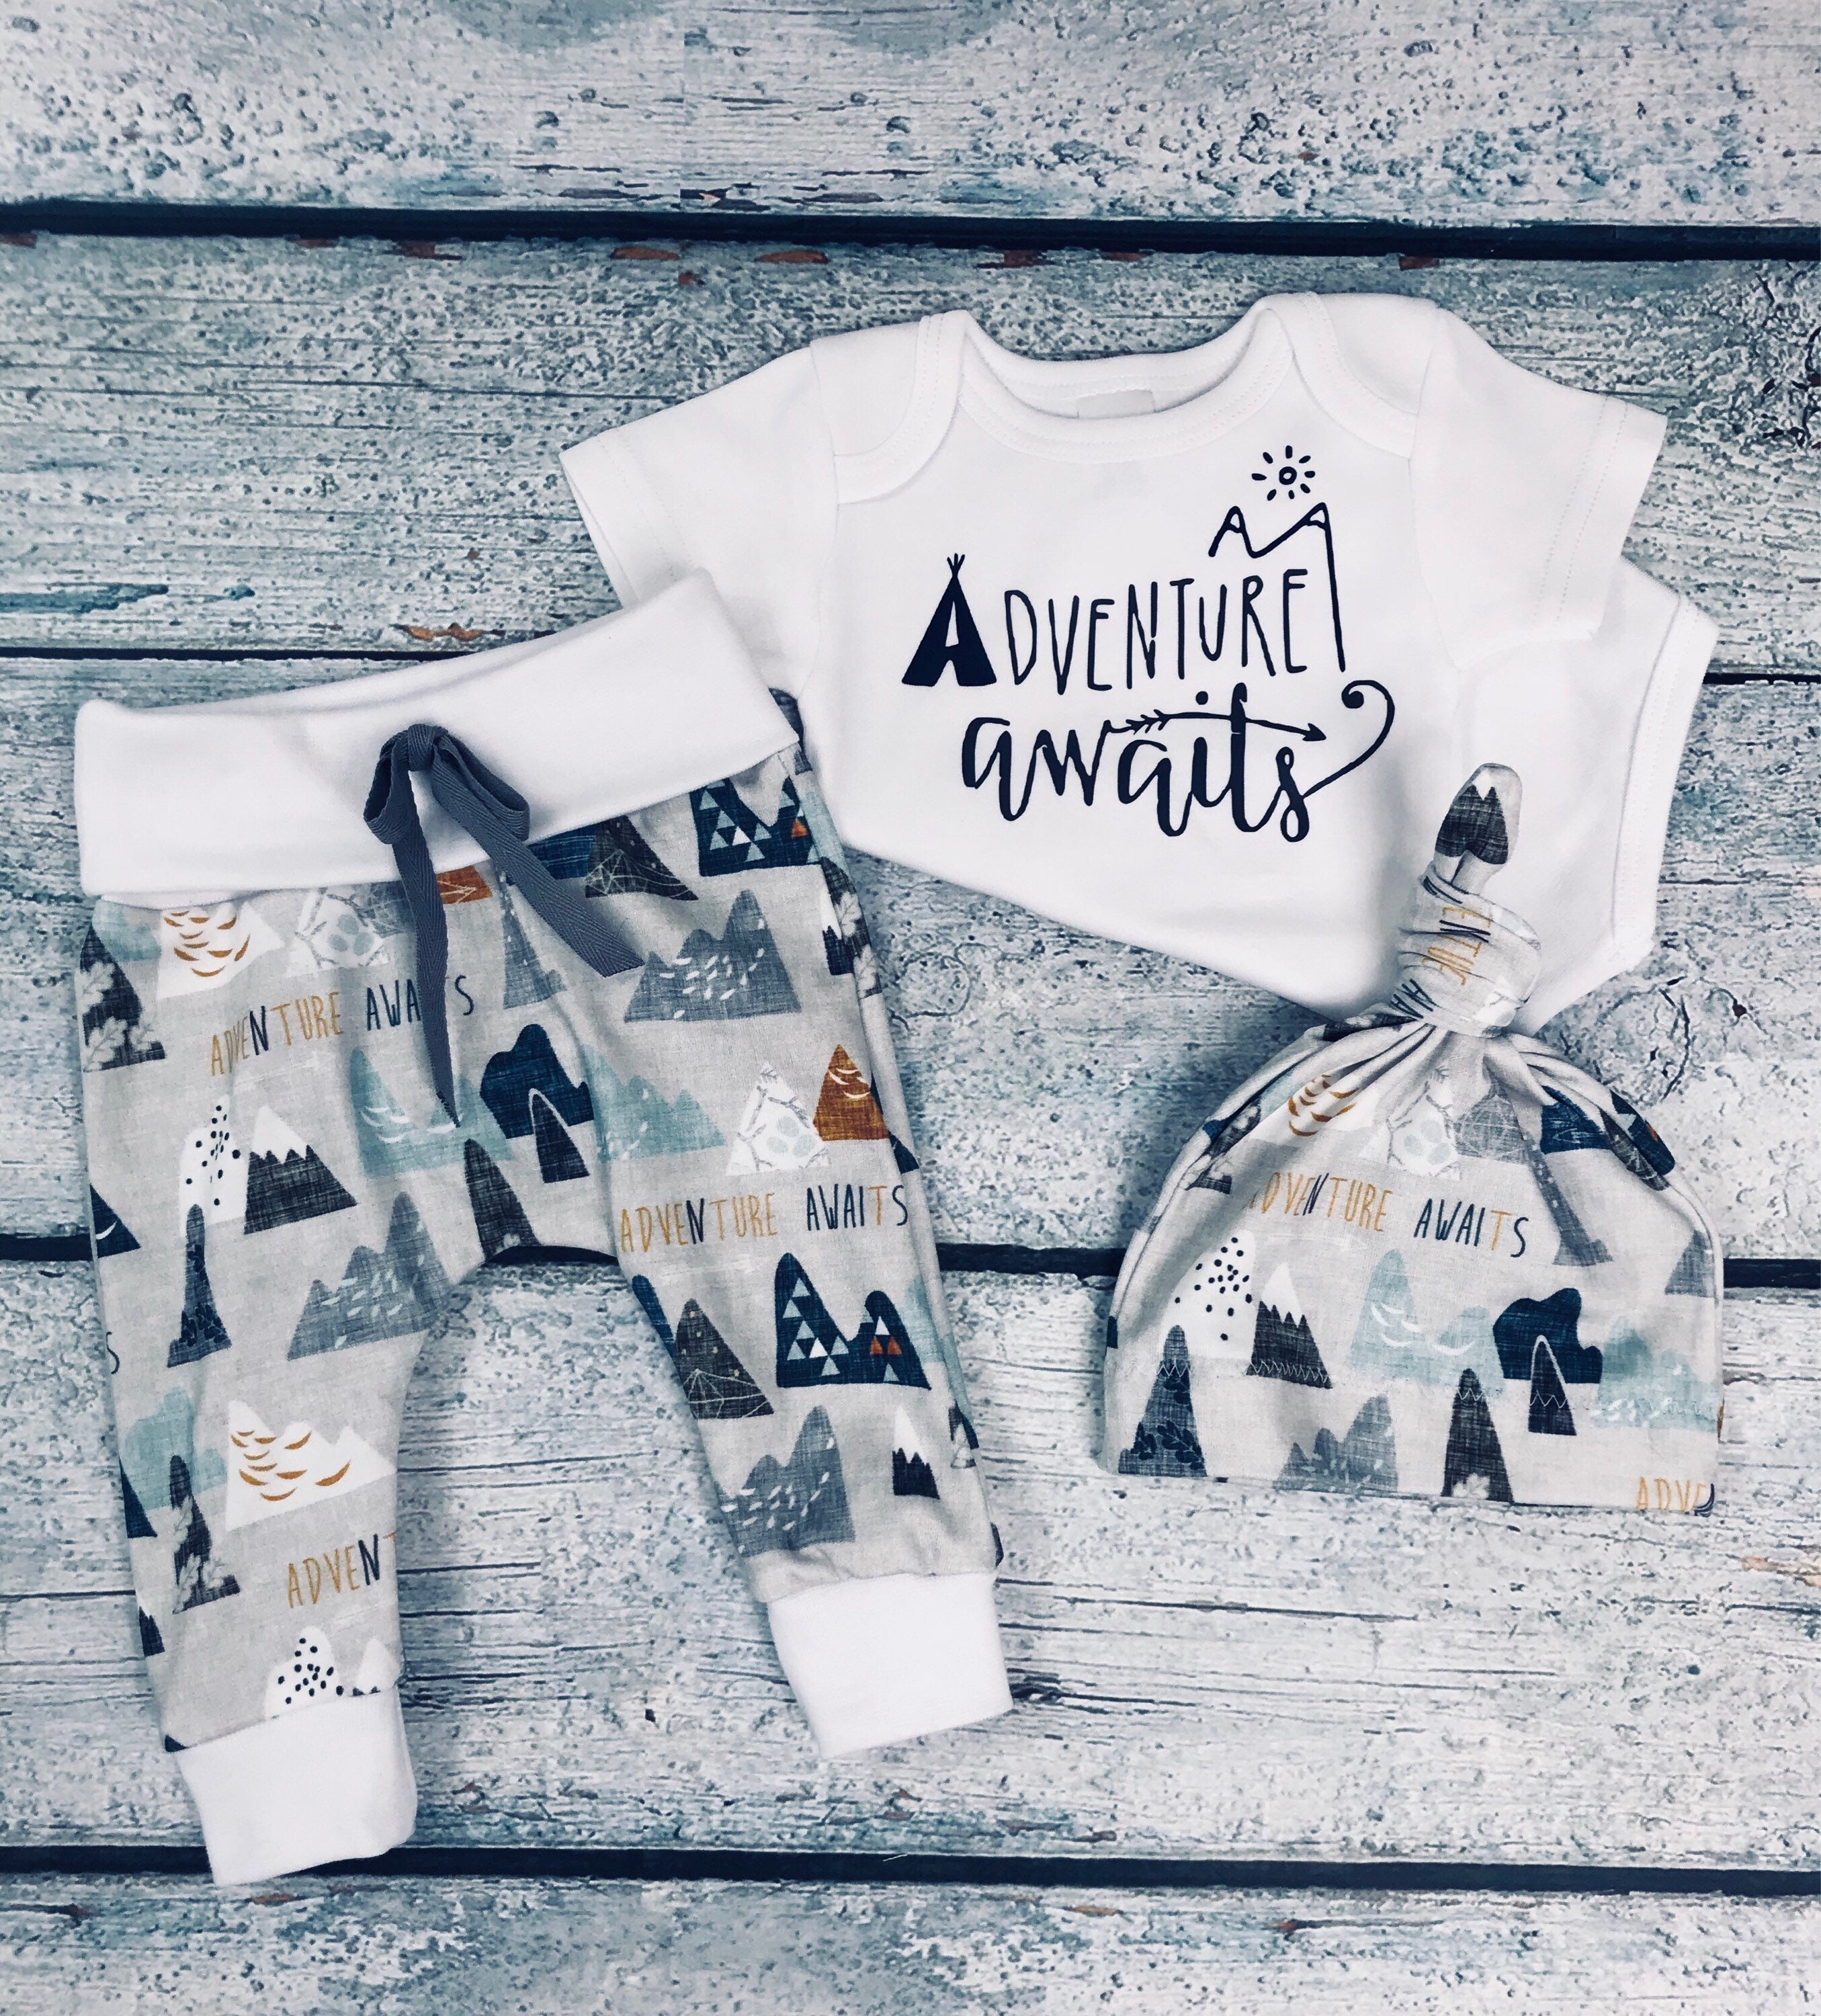 feb4788503445 baby boy coming home outfit adventure awaits outfit baby boy take home  outfit newborn outfit organic cotton newborn set baby shower gift